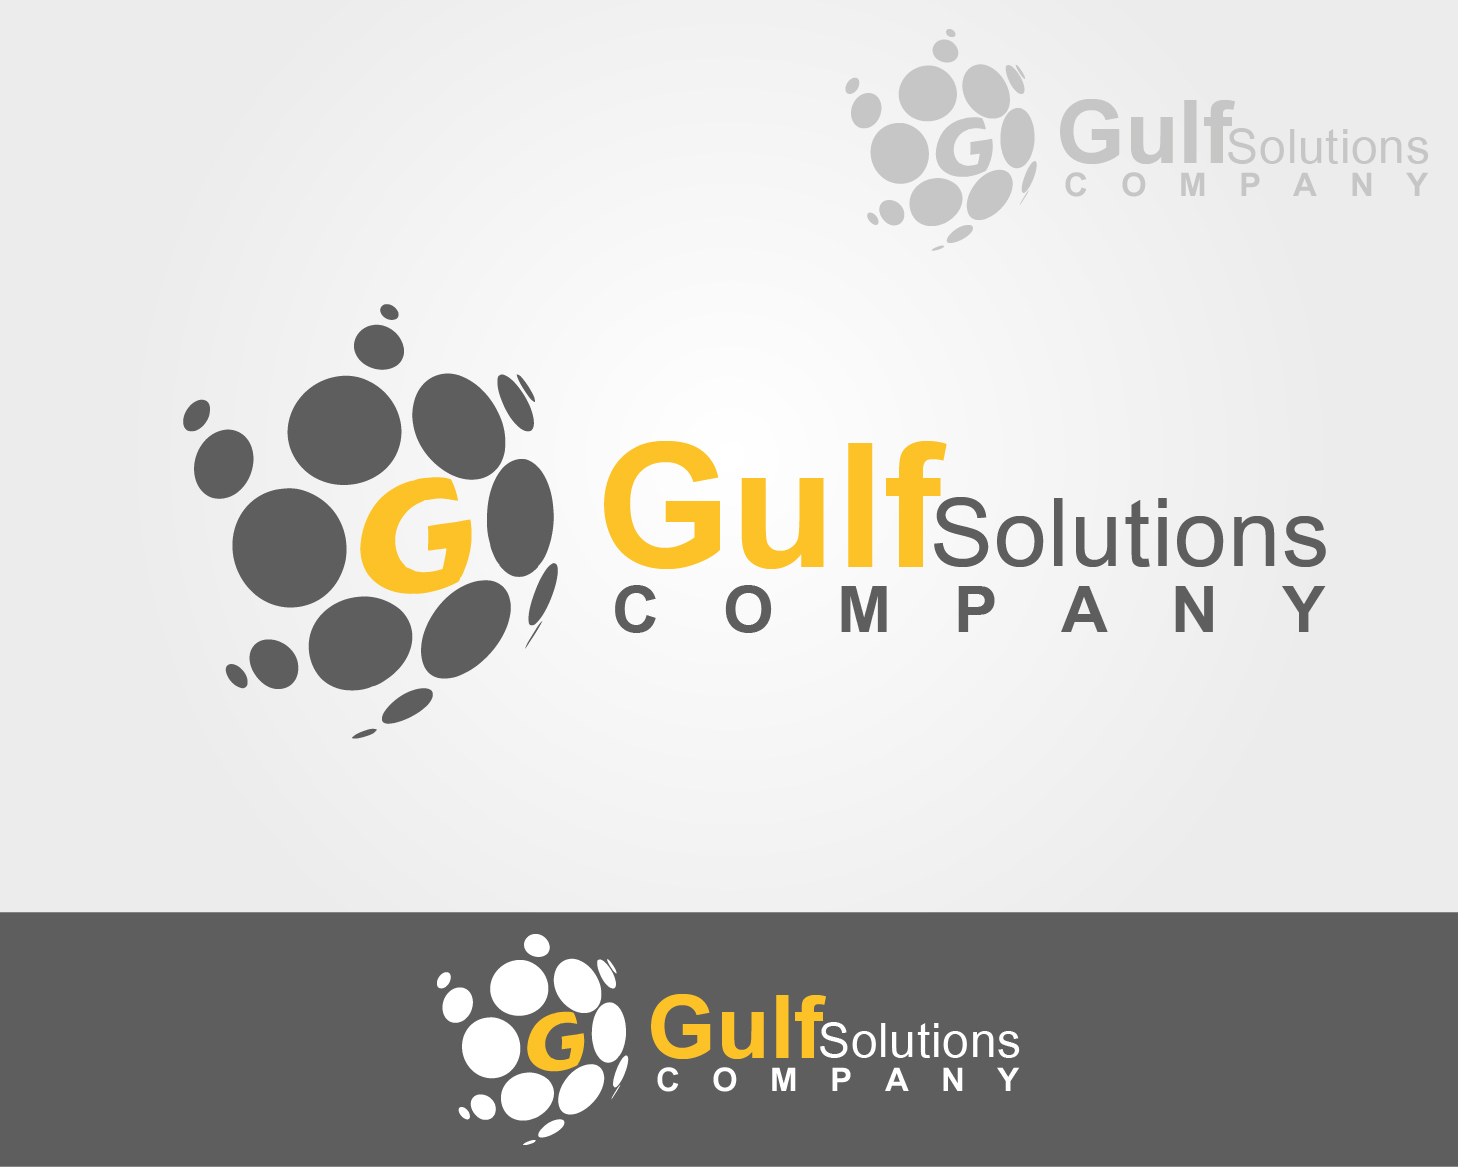 Logo Design by VENTSISLAV KOVACHEV - Entry No. 81 in the Logo Design Contest New Logo Design for Gulf solutions company.